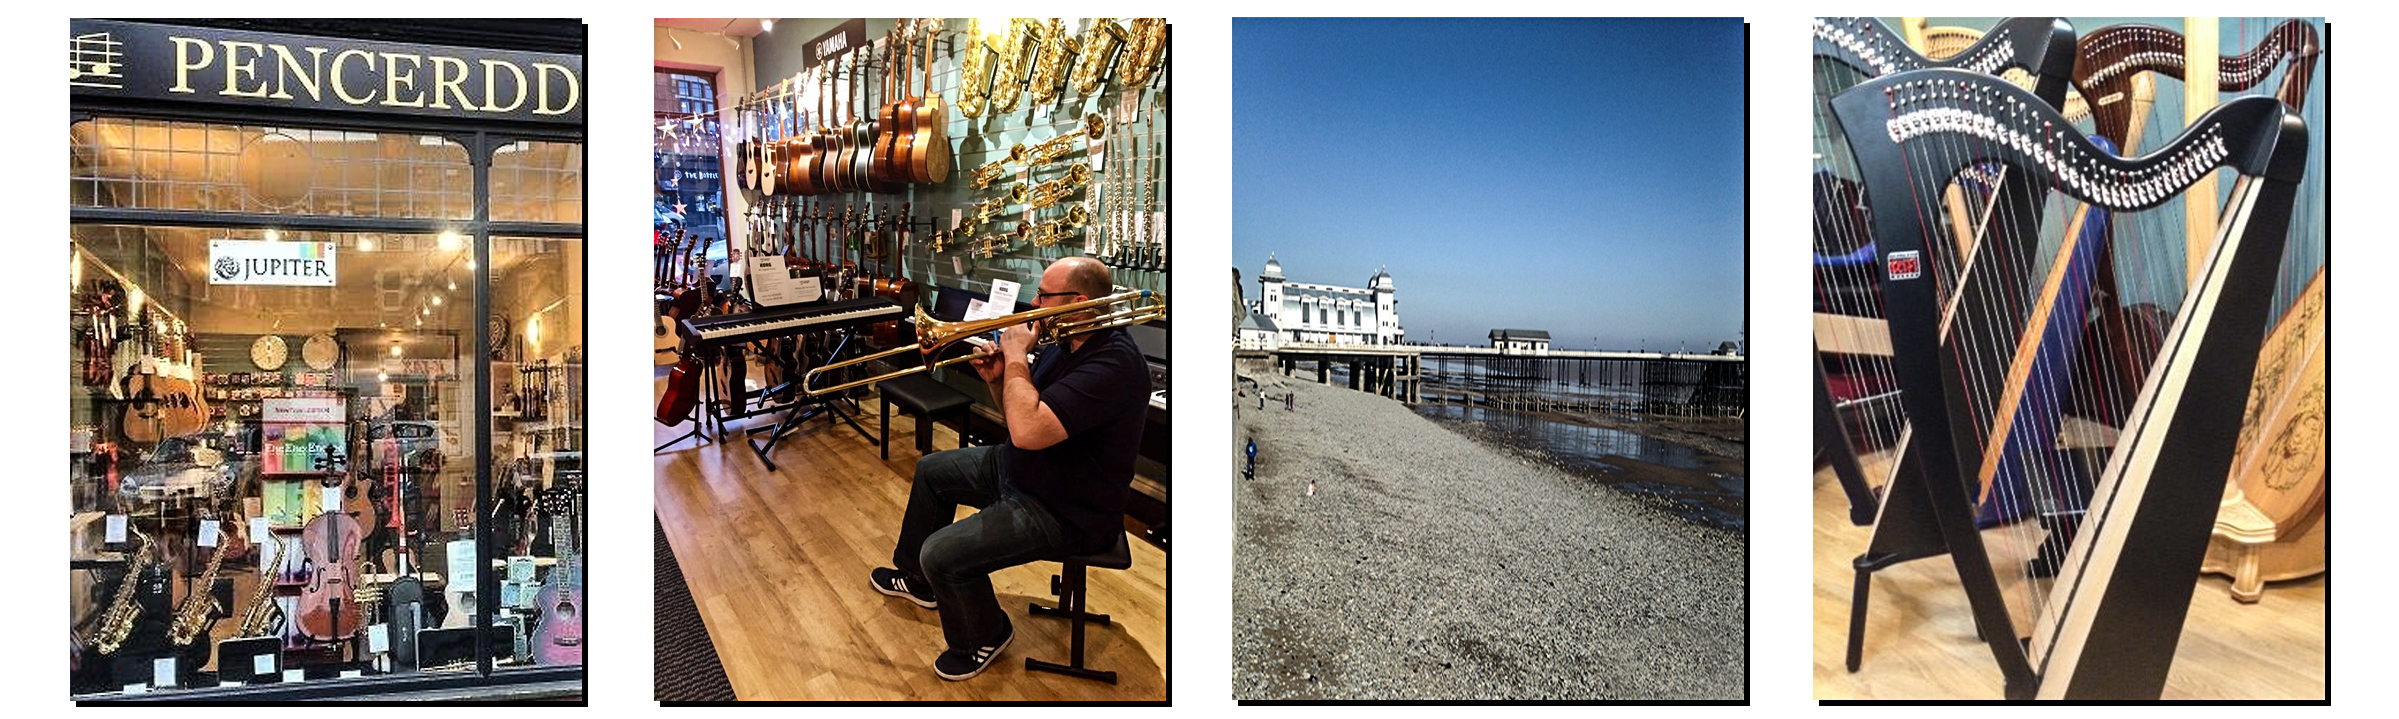 Pencerdd Music is a friendly family run music store in the heart of Penarth